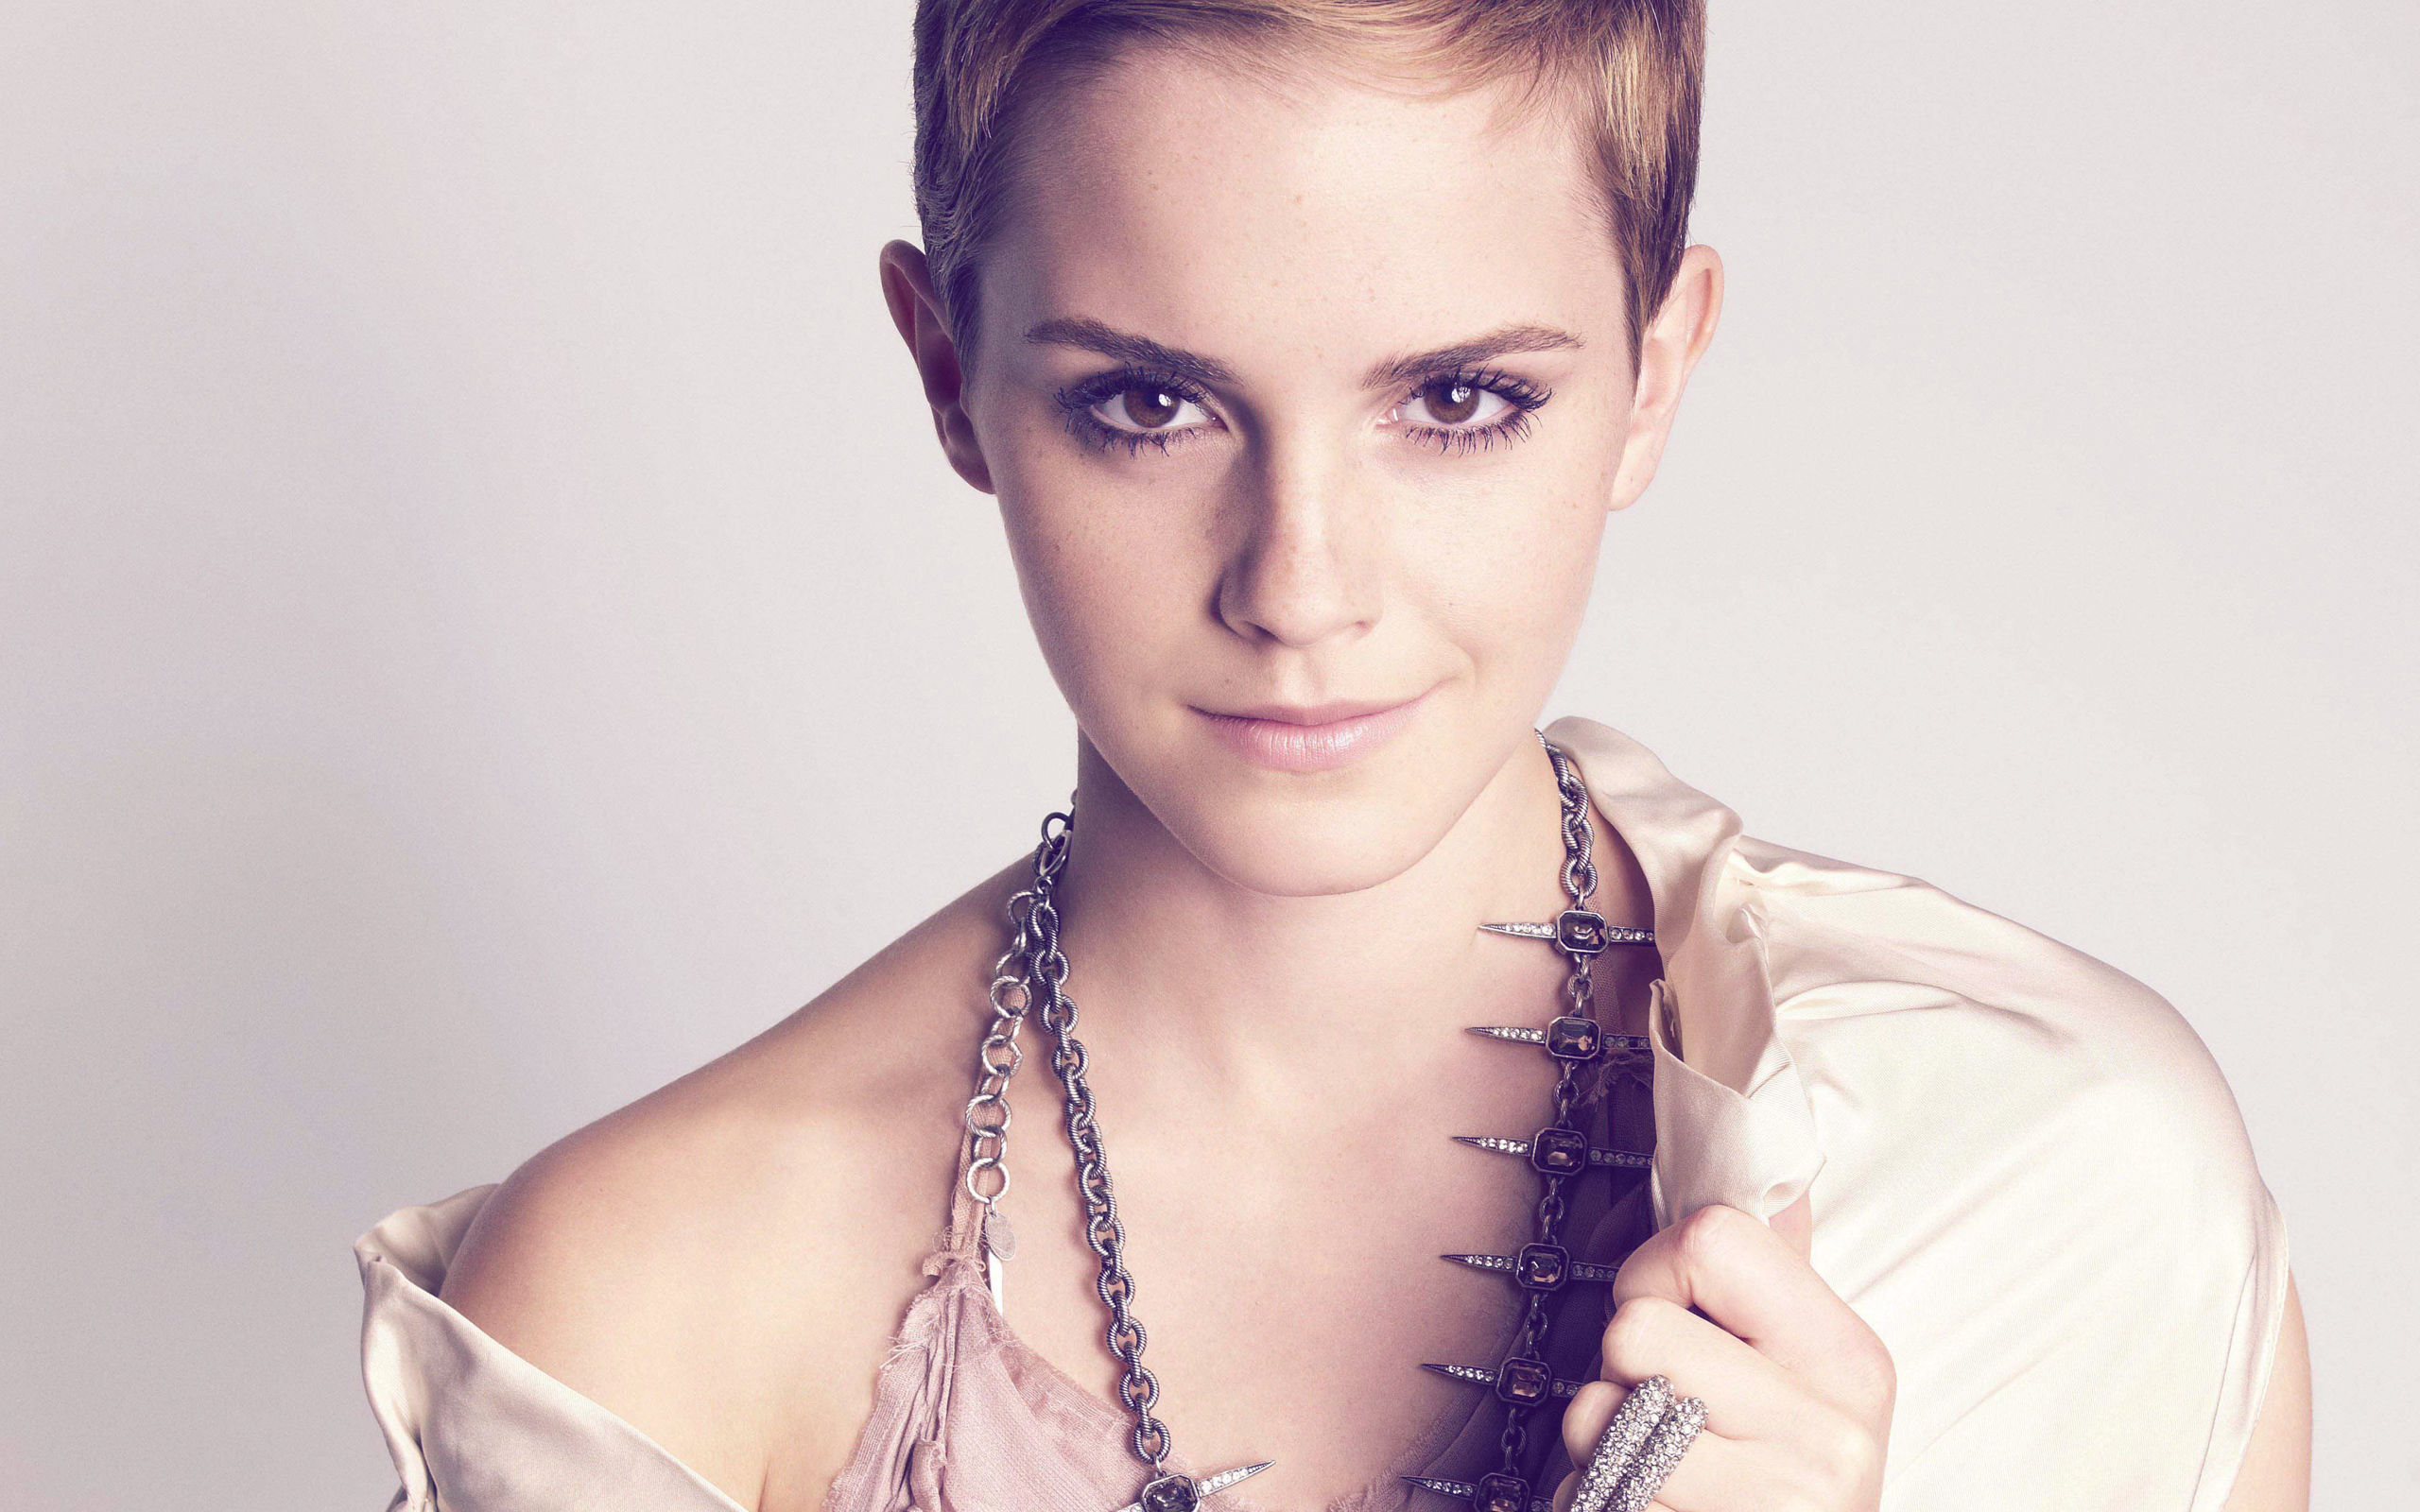 Emma Watson 2012 wallpaper download